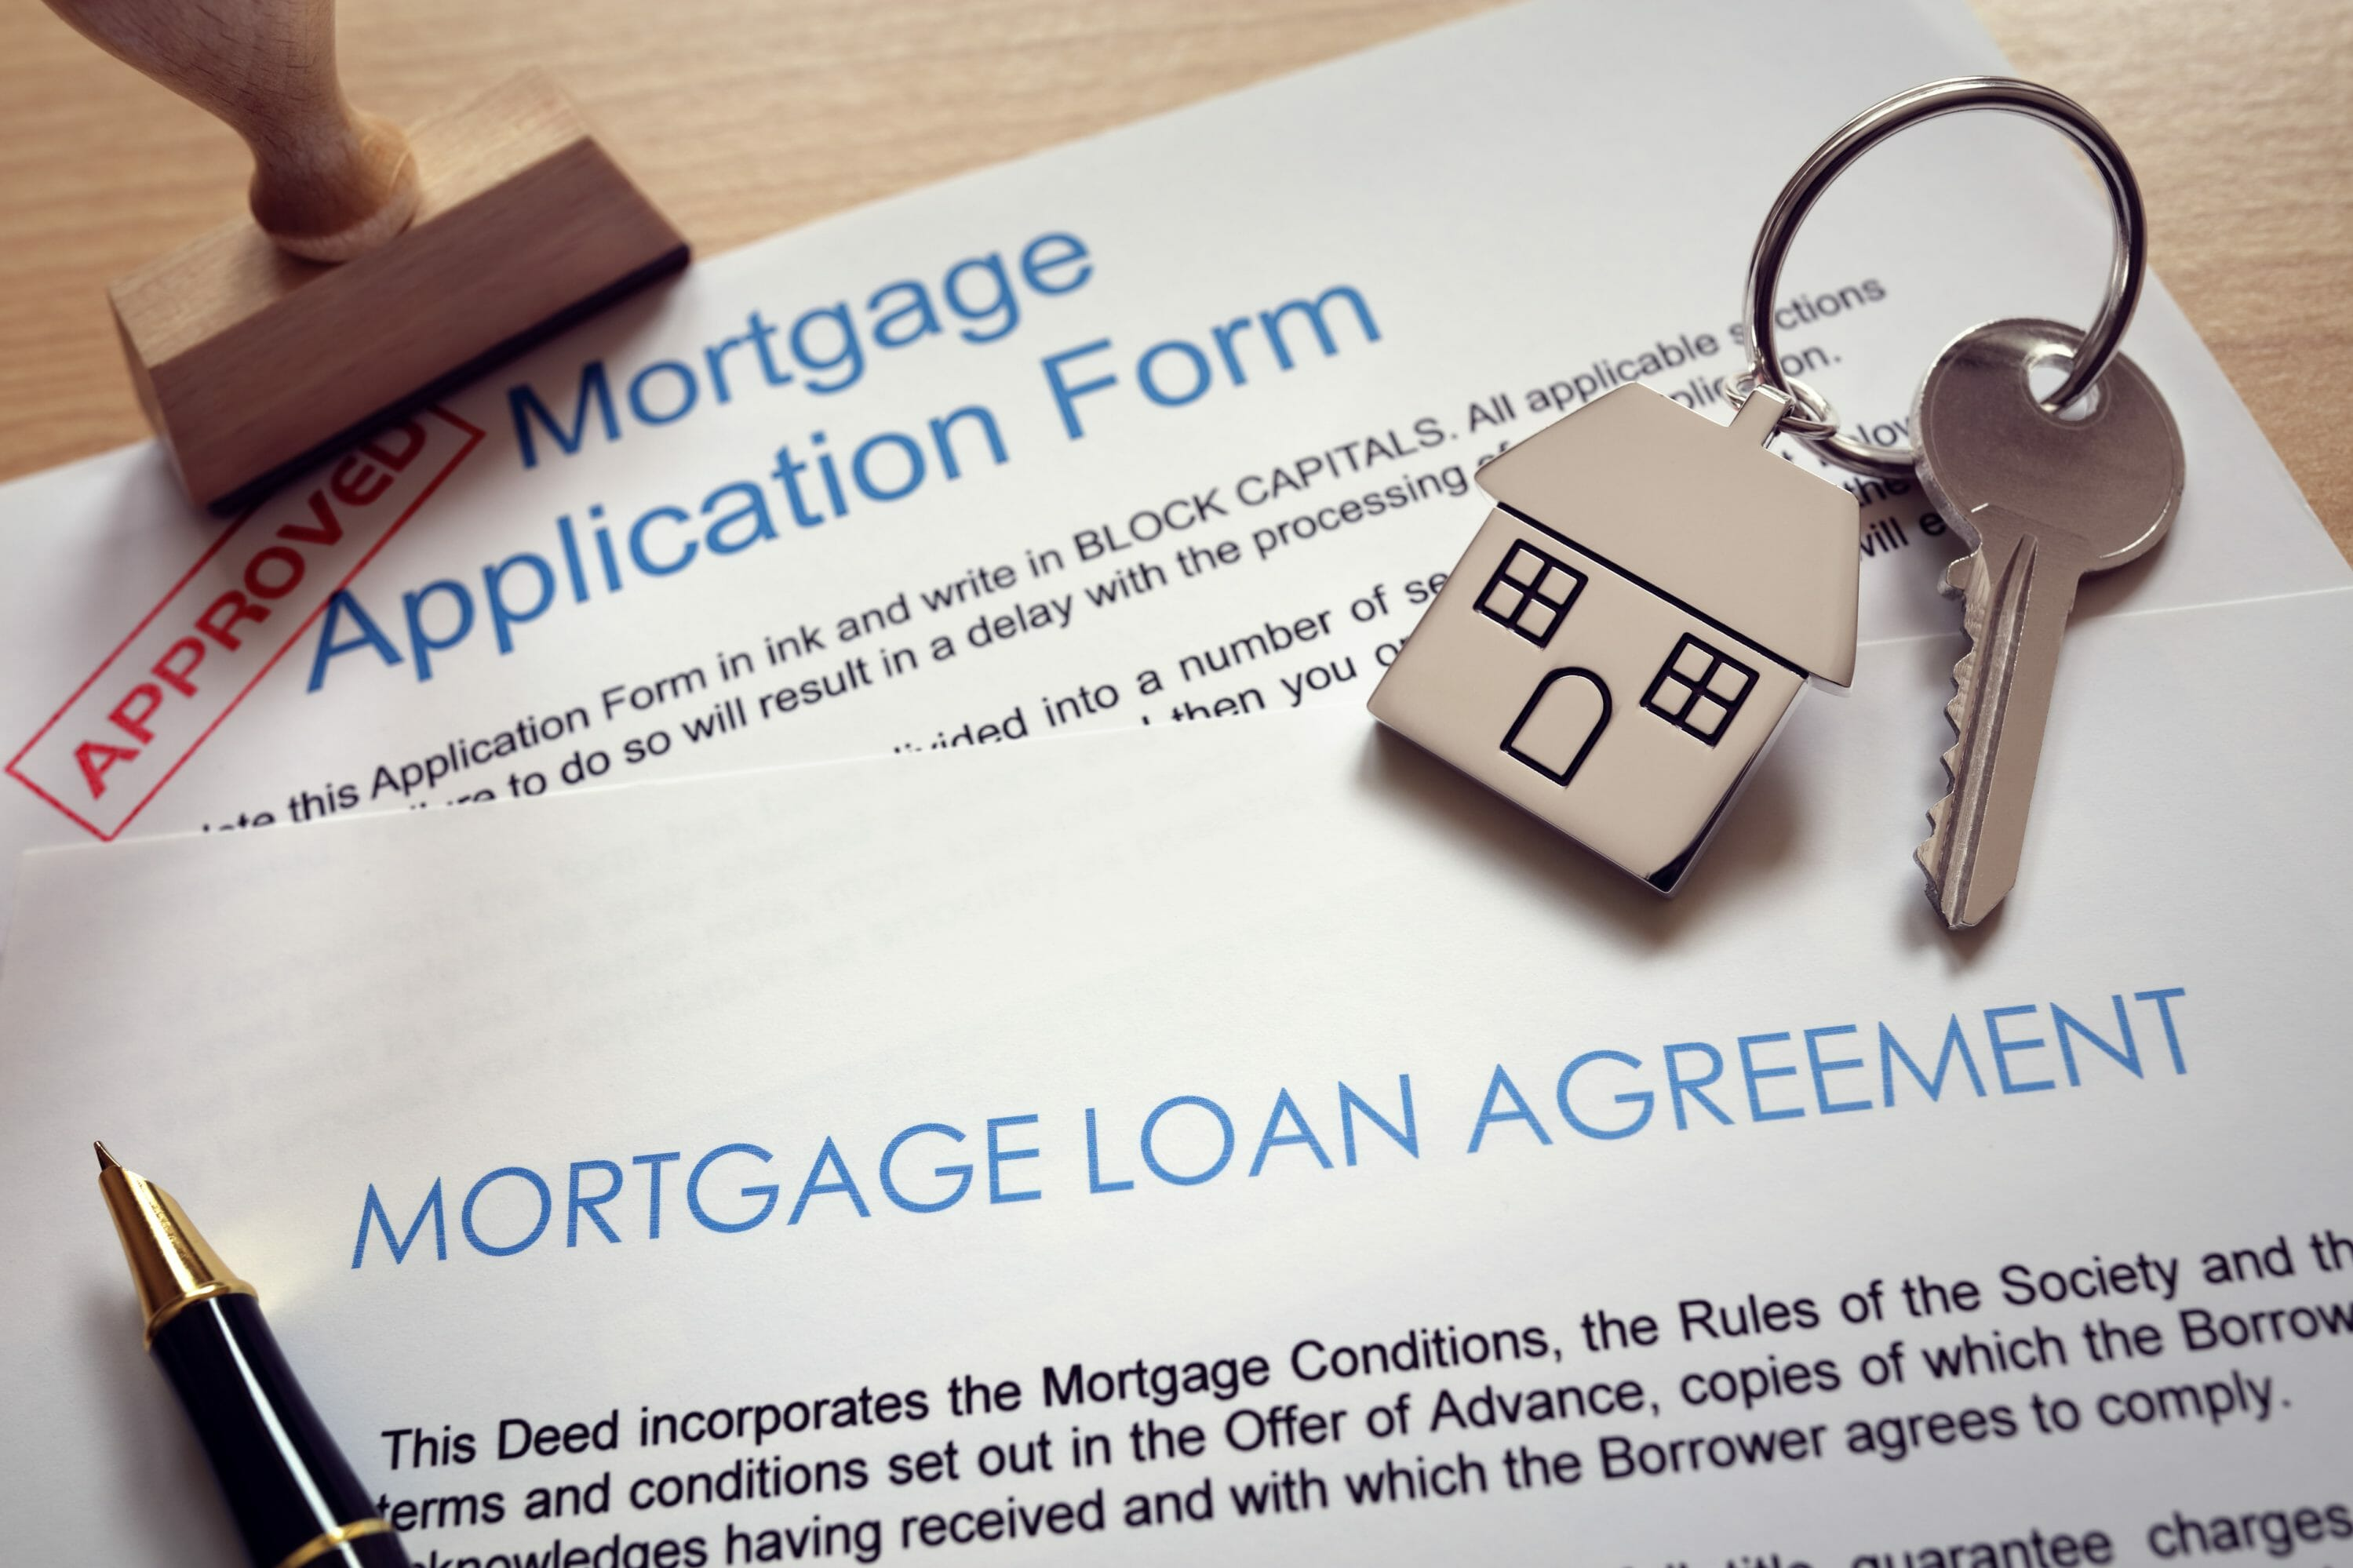 Personal debt – maybe the mortgage isn't so bad